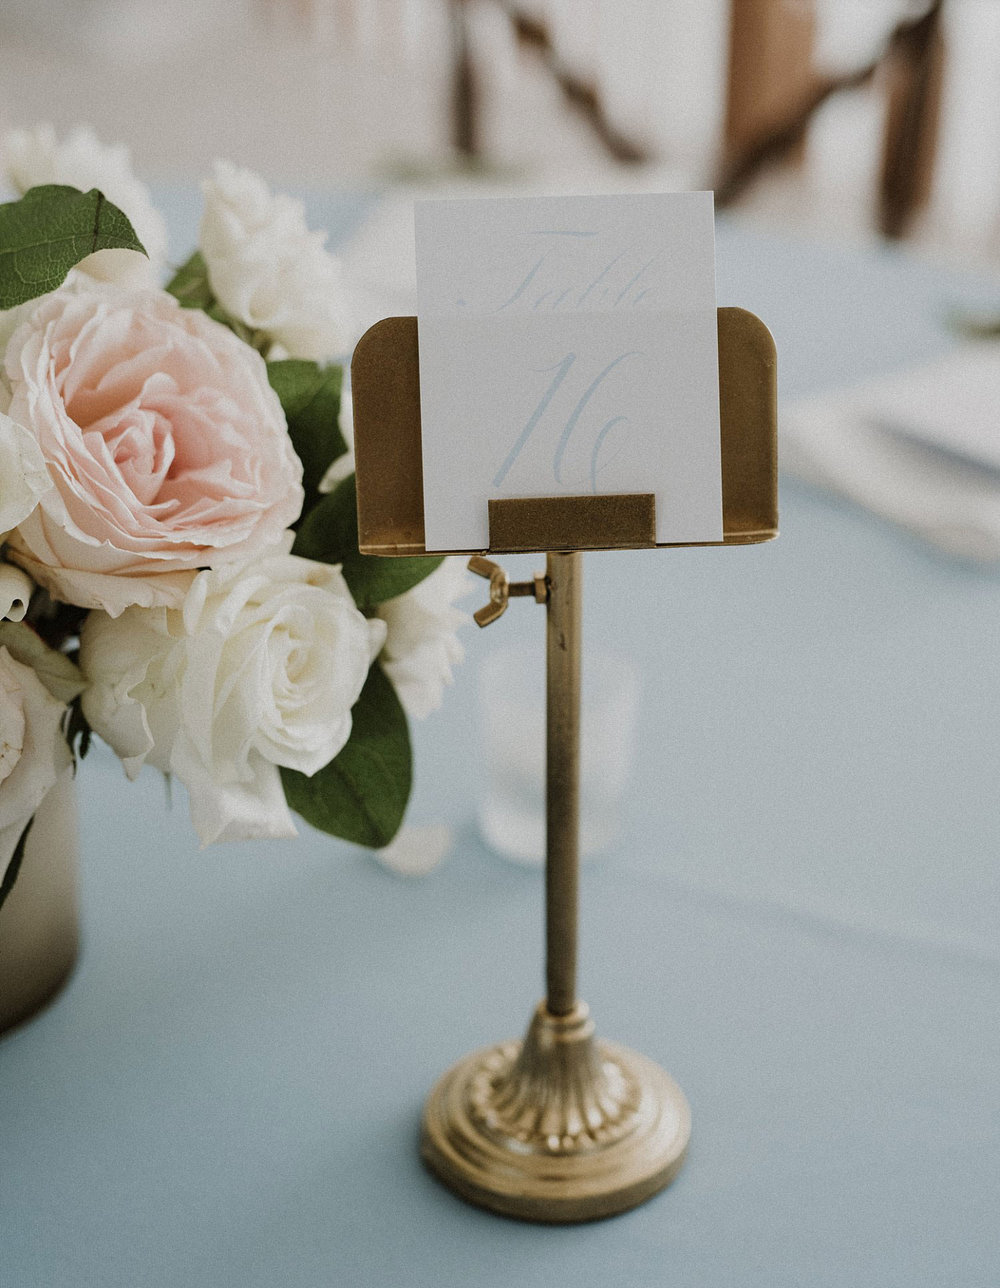 printed table number on gold stand